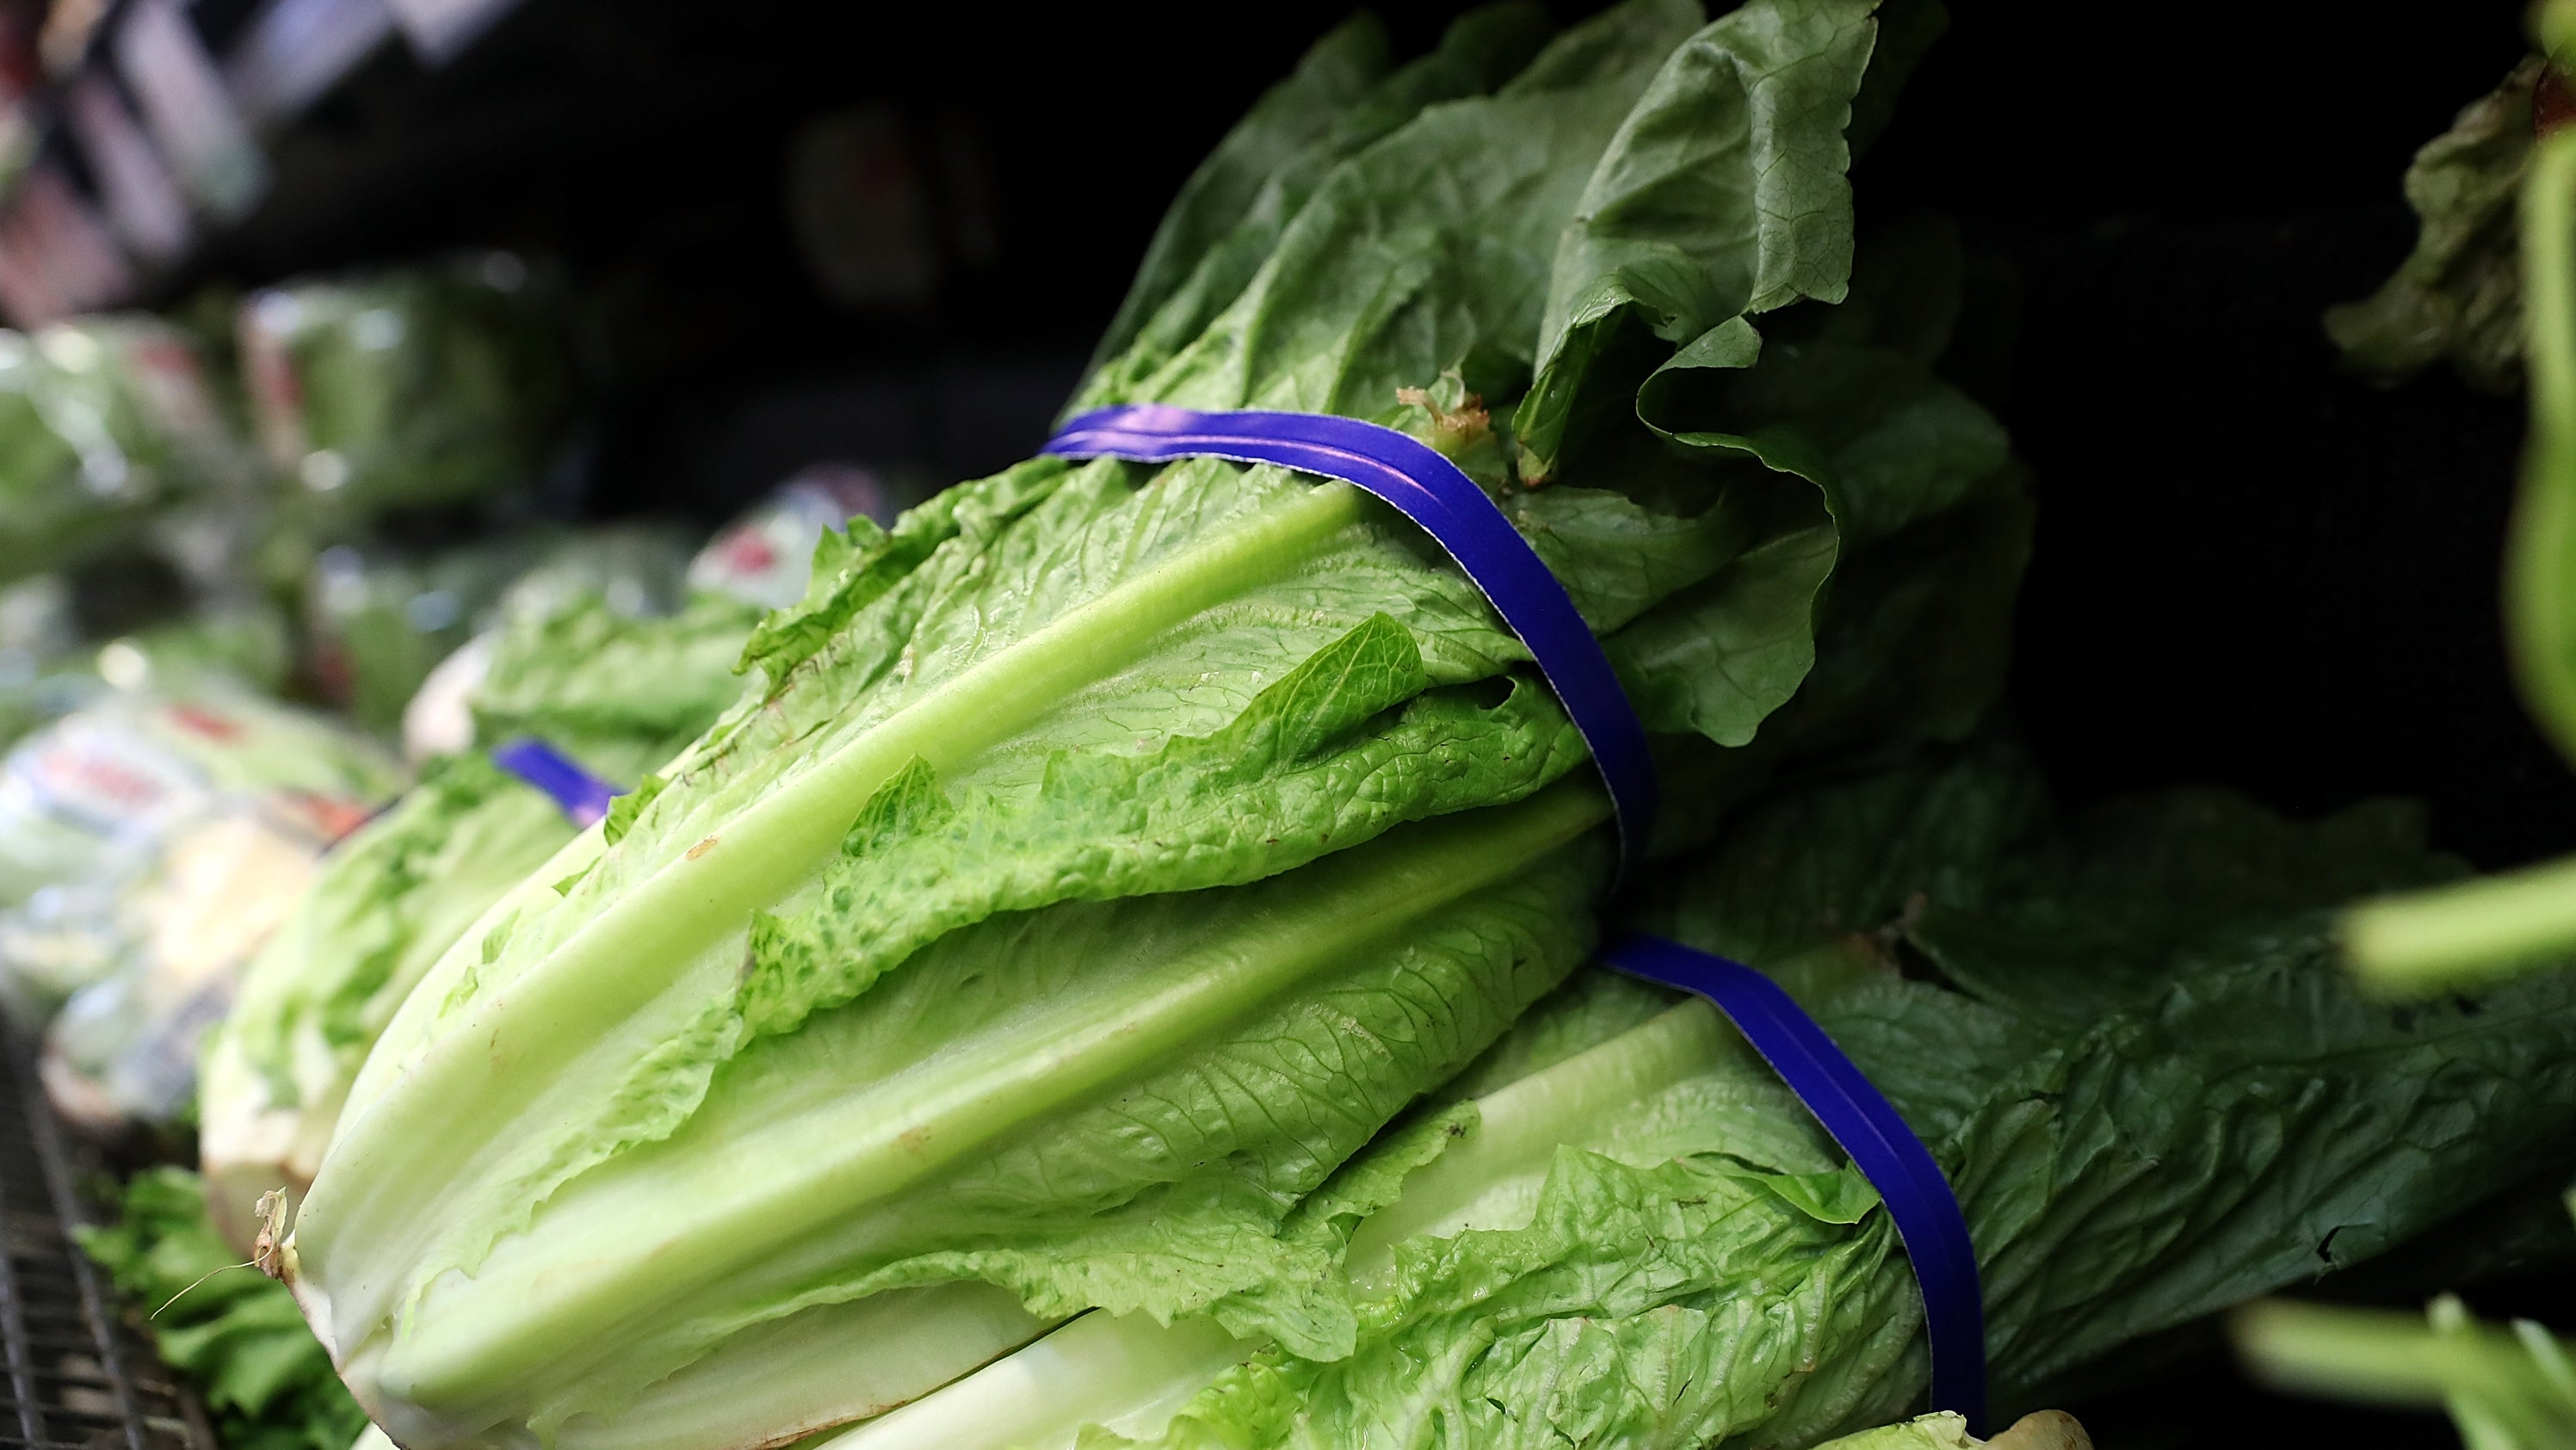 CDC Says Some Romaine Lettuce Is Now Safe To Eat – But Don't Break Out The Salad Tongs Yet